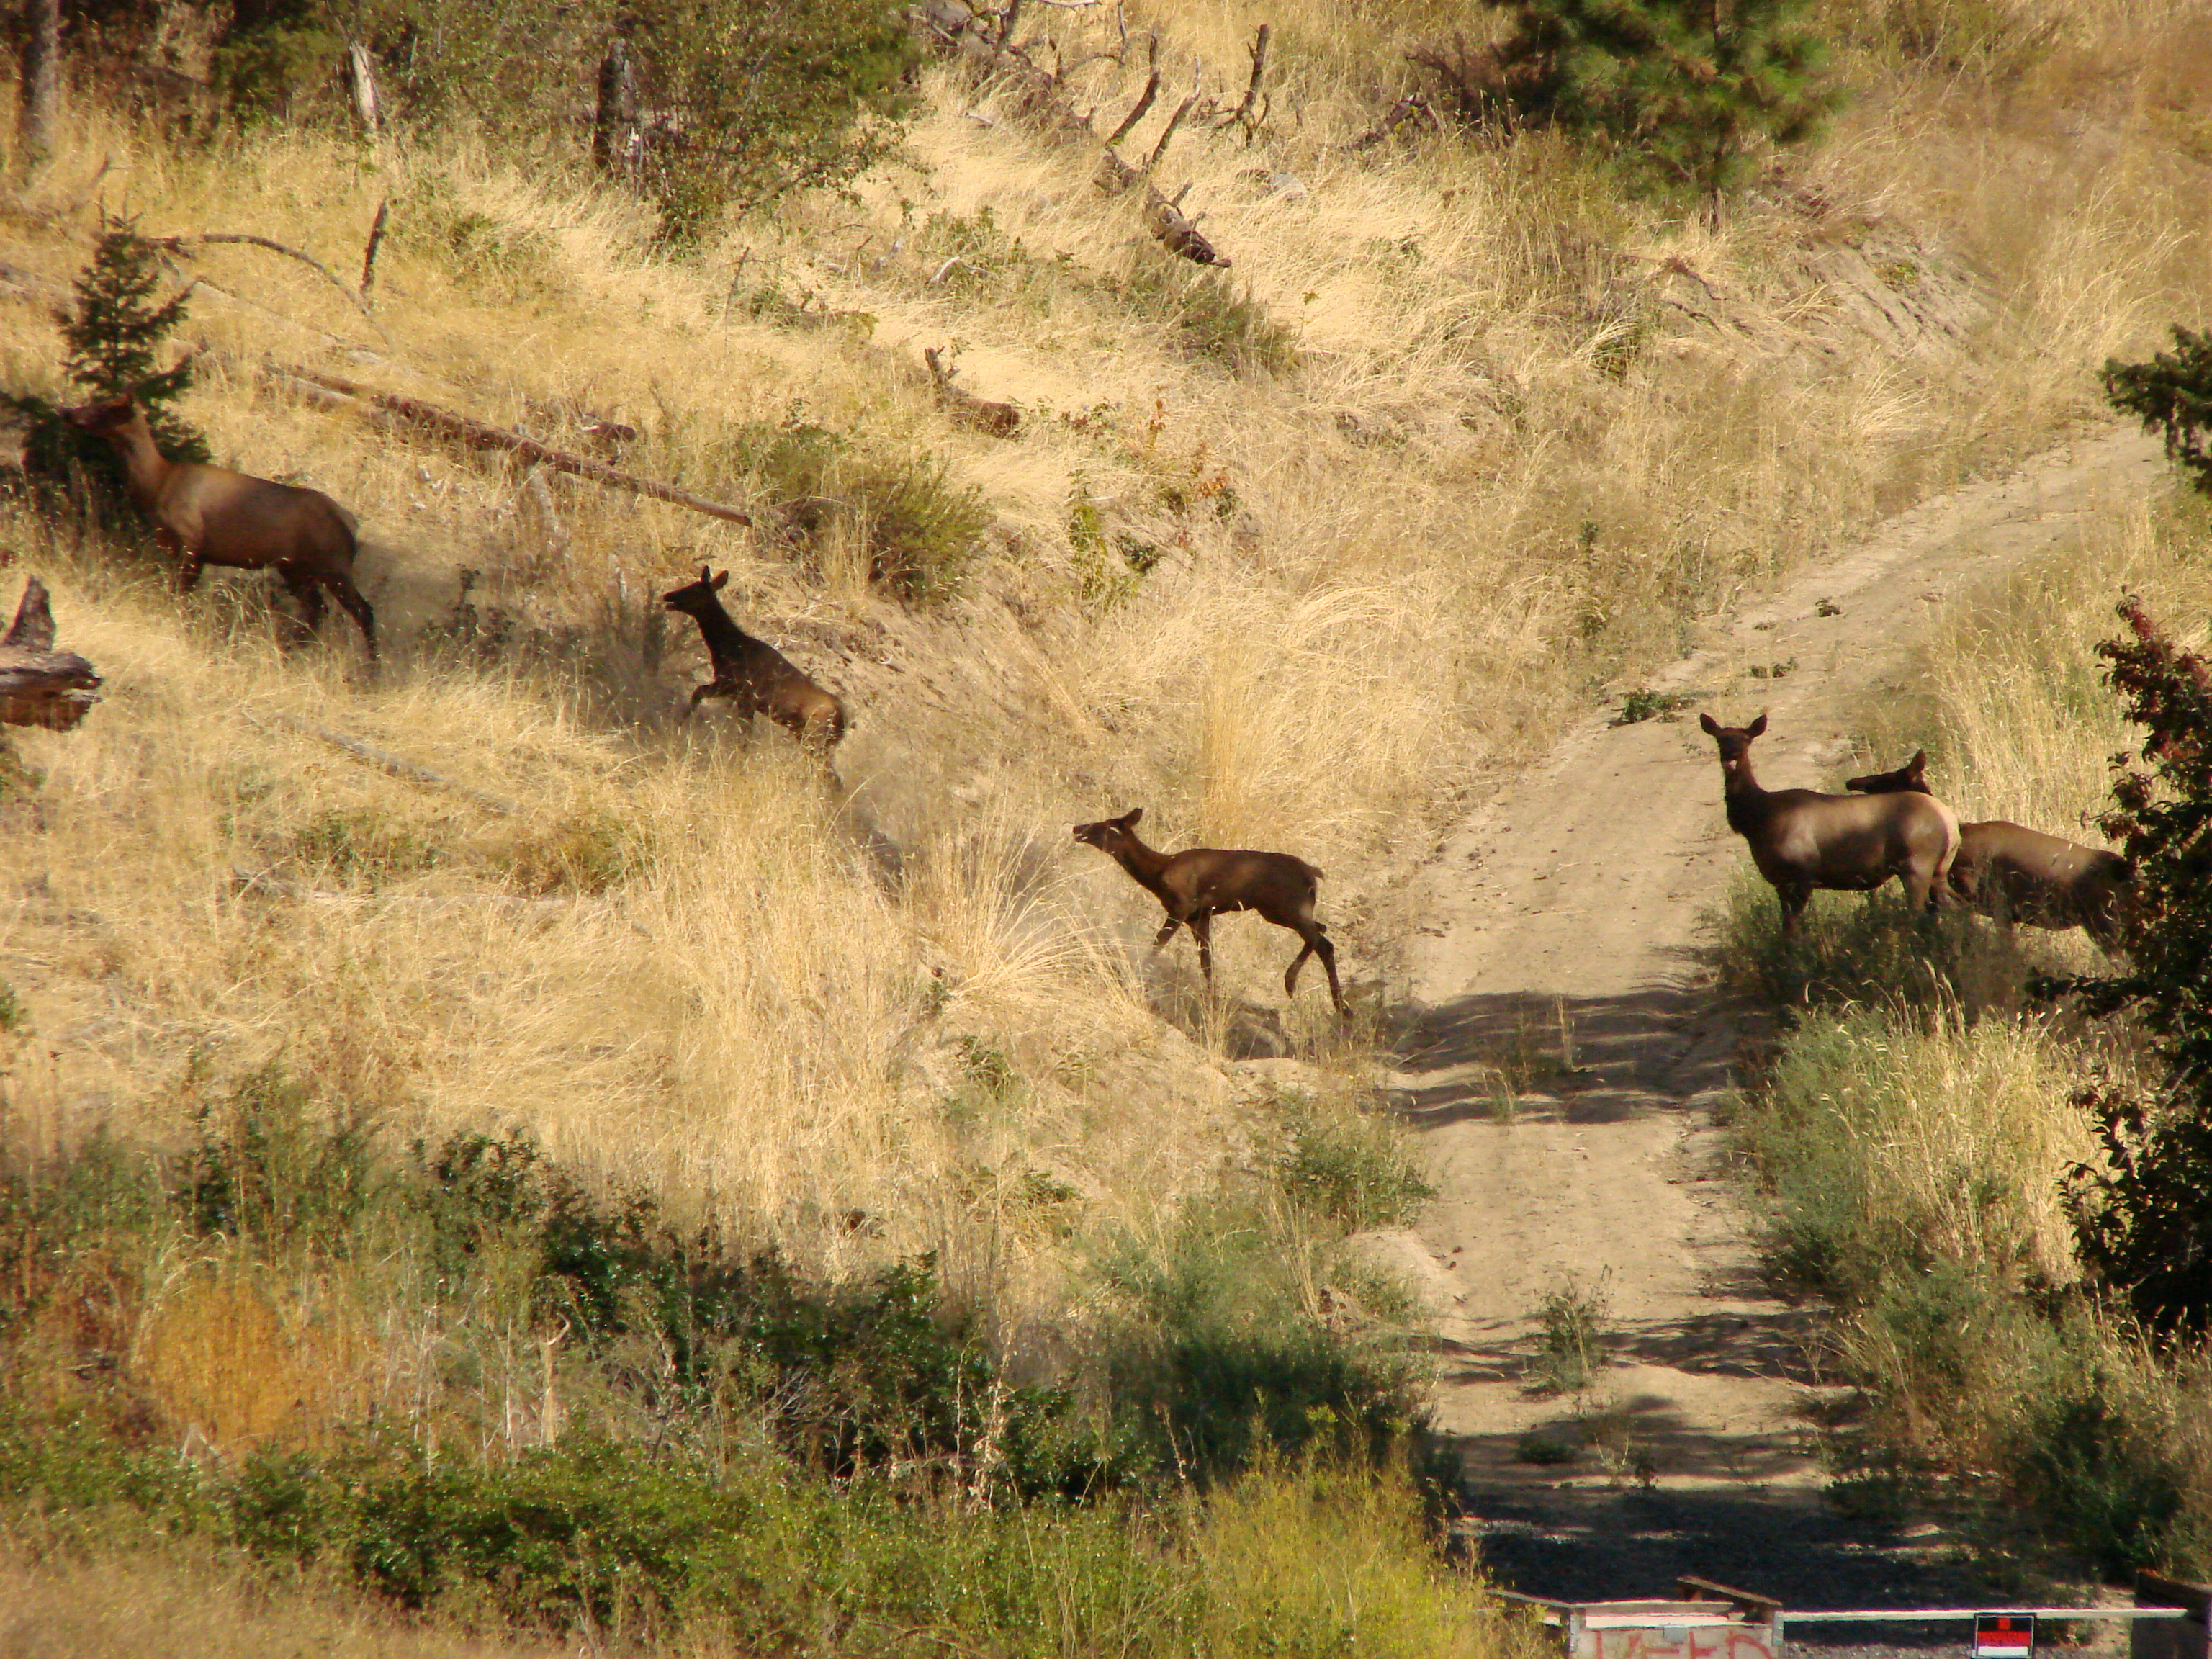 elk crossing path.JPG